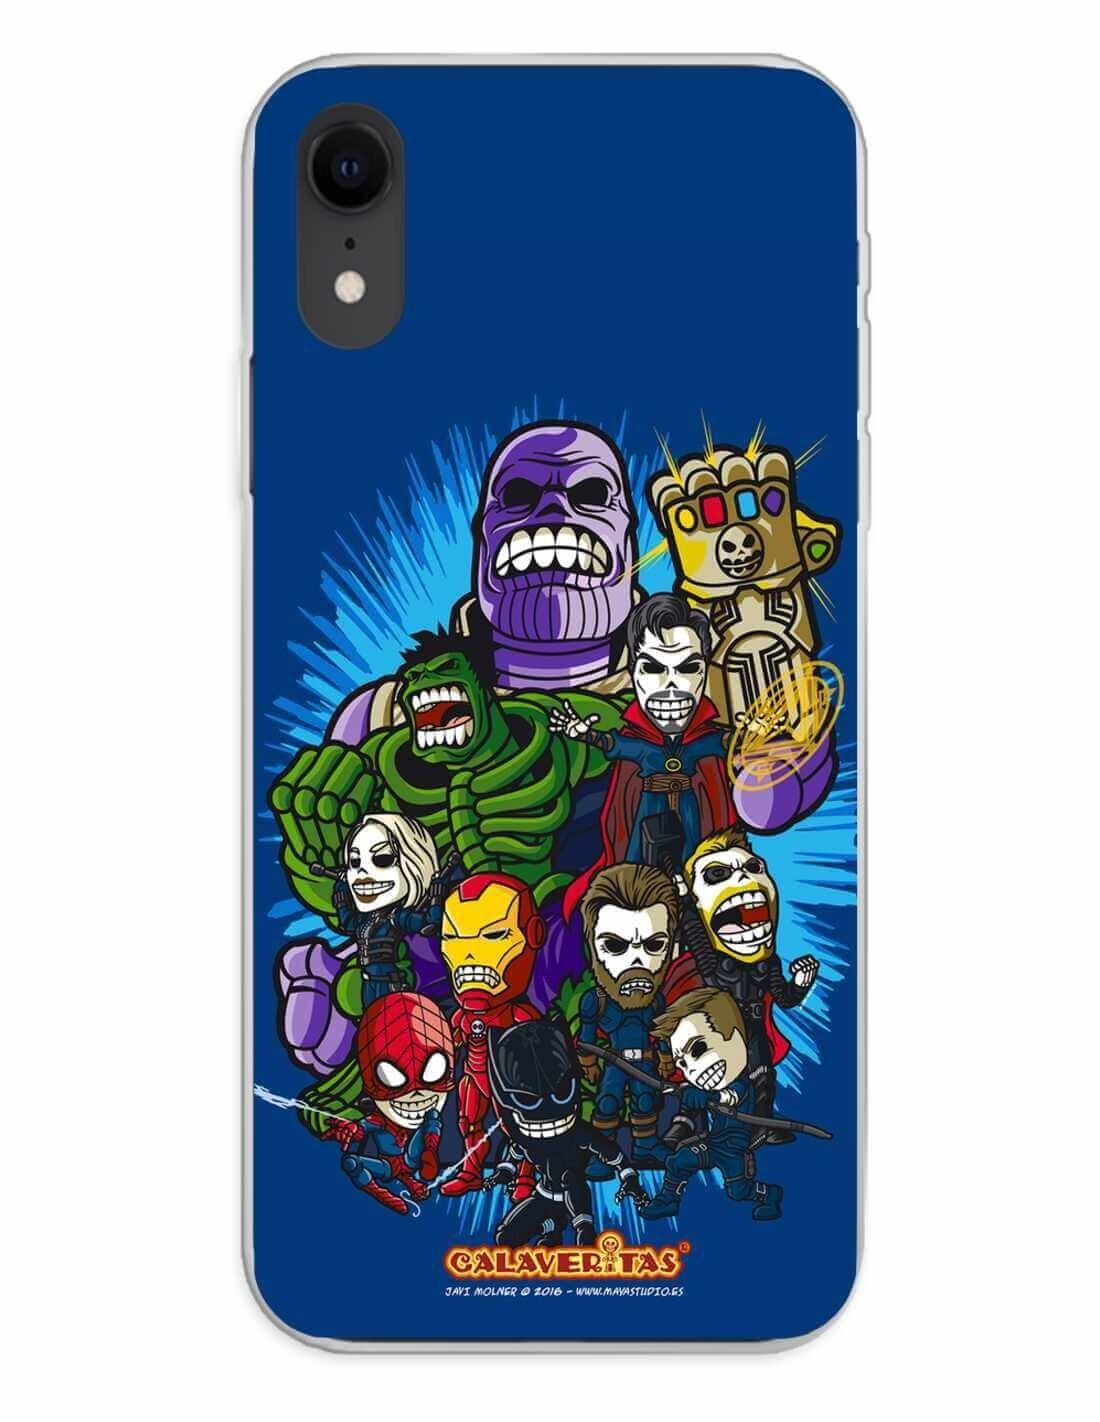 Apple iPhone XR Funda Silicona Calaveritas The Fighters